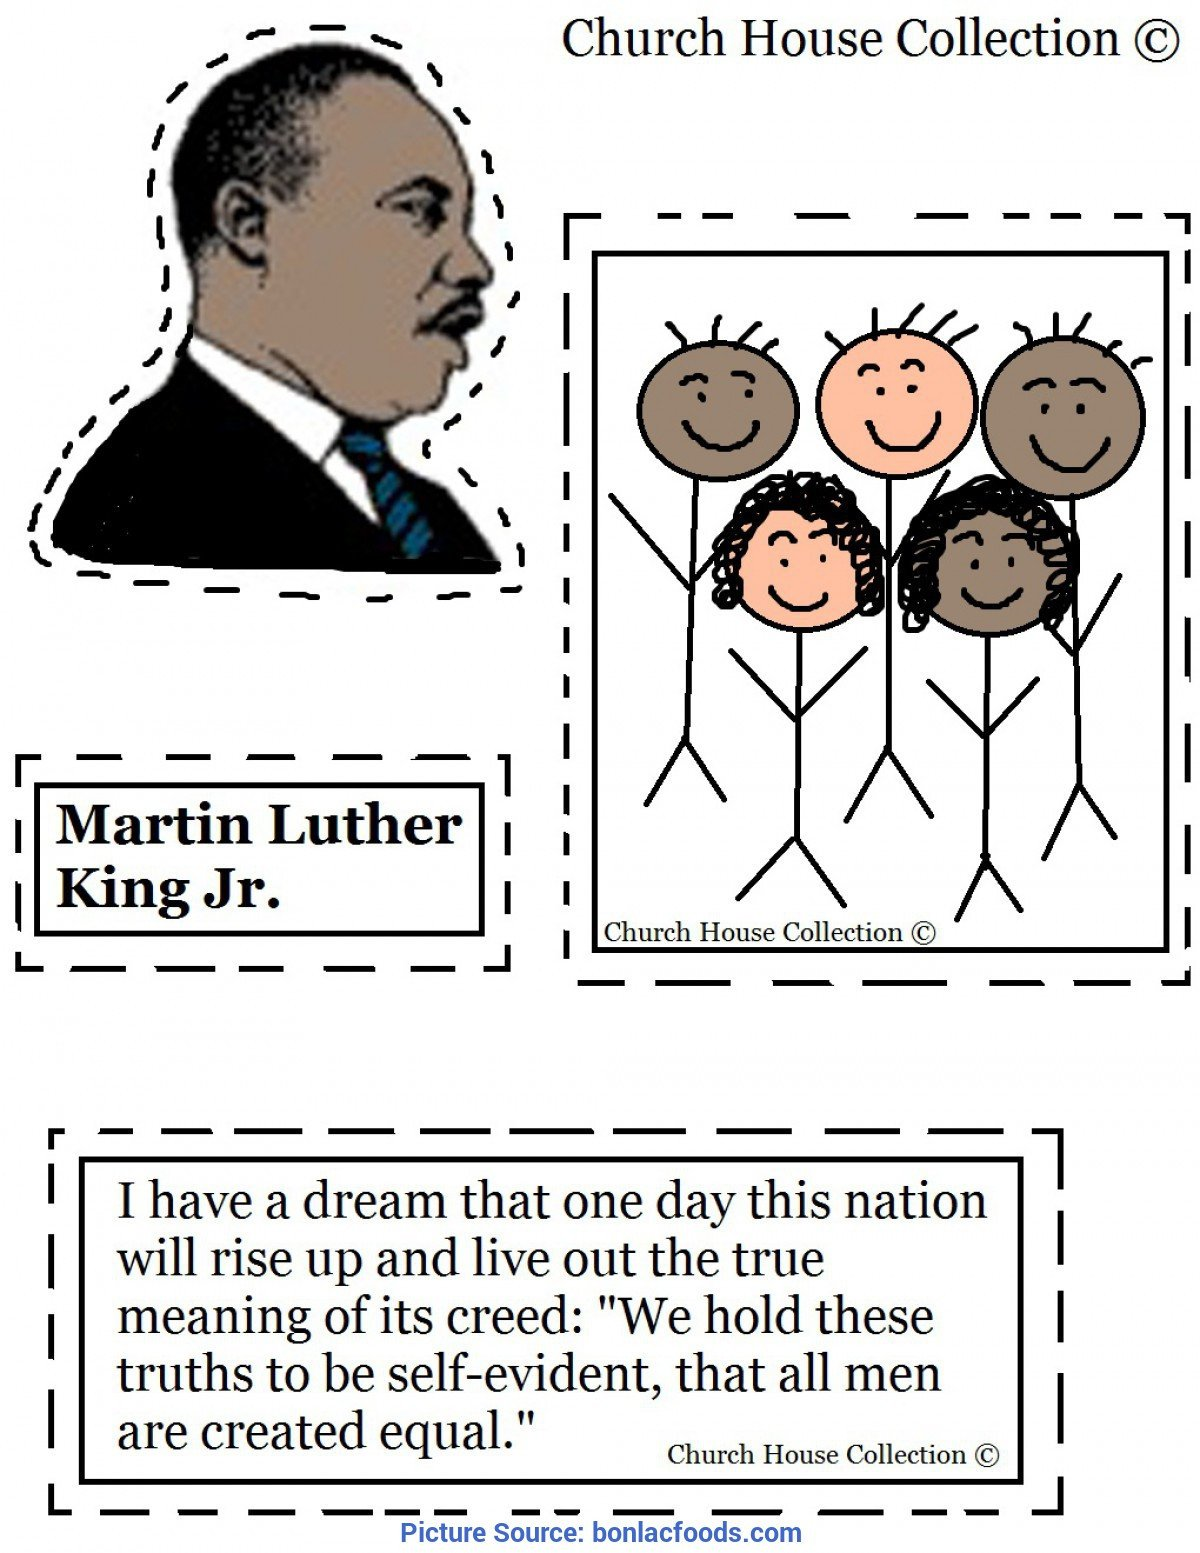 martin luther king jrg pages and worksheets best fo ota tech great pre k lesson plans on for all share free o printable